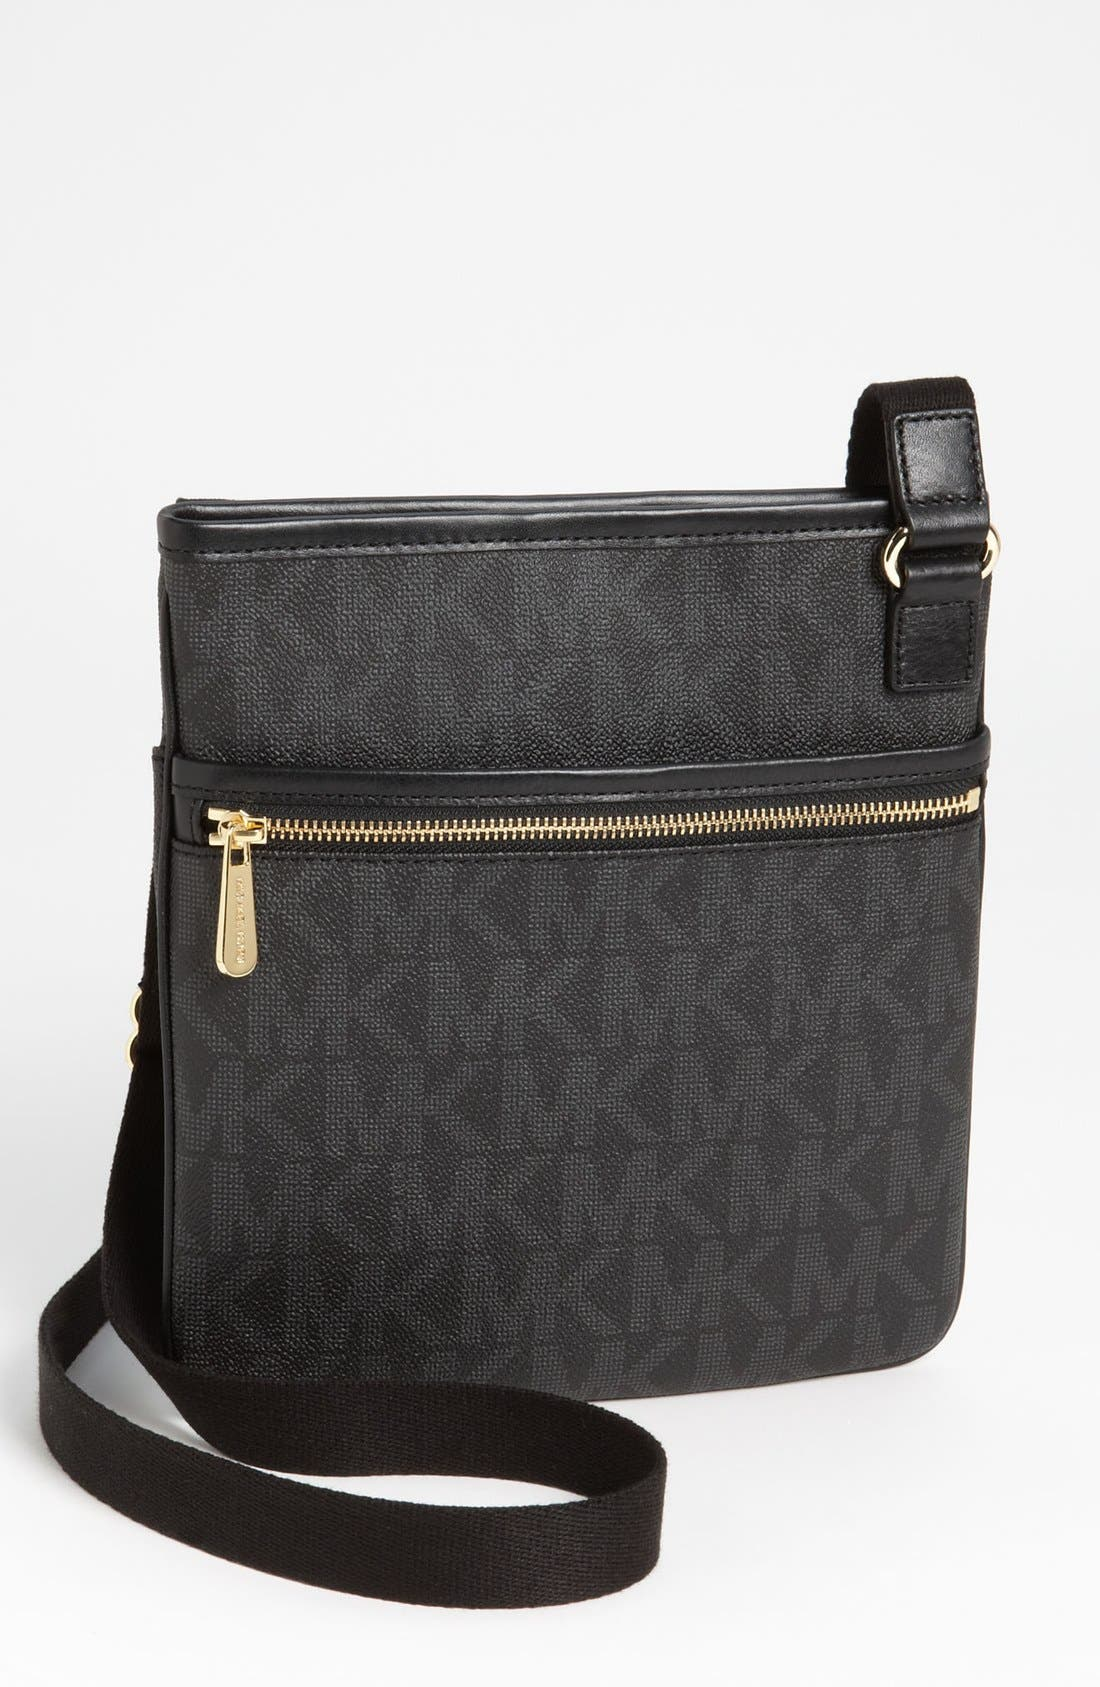 Main Image - MICHAEL Michael Kors 'Signature' Crossbody Bag